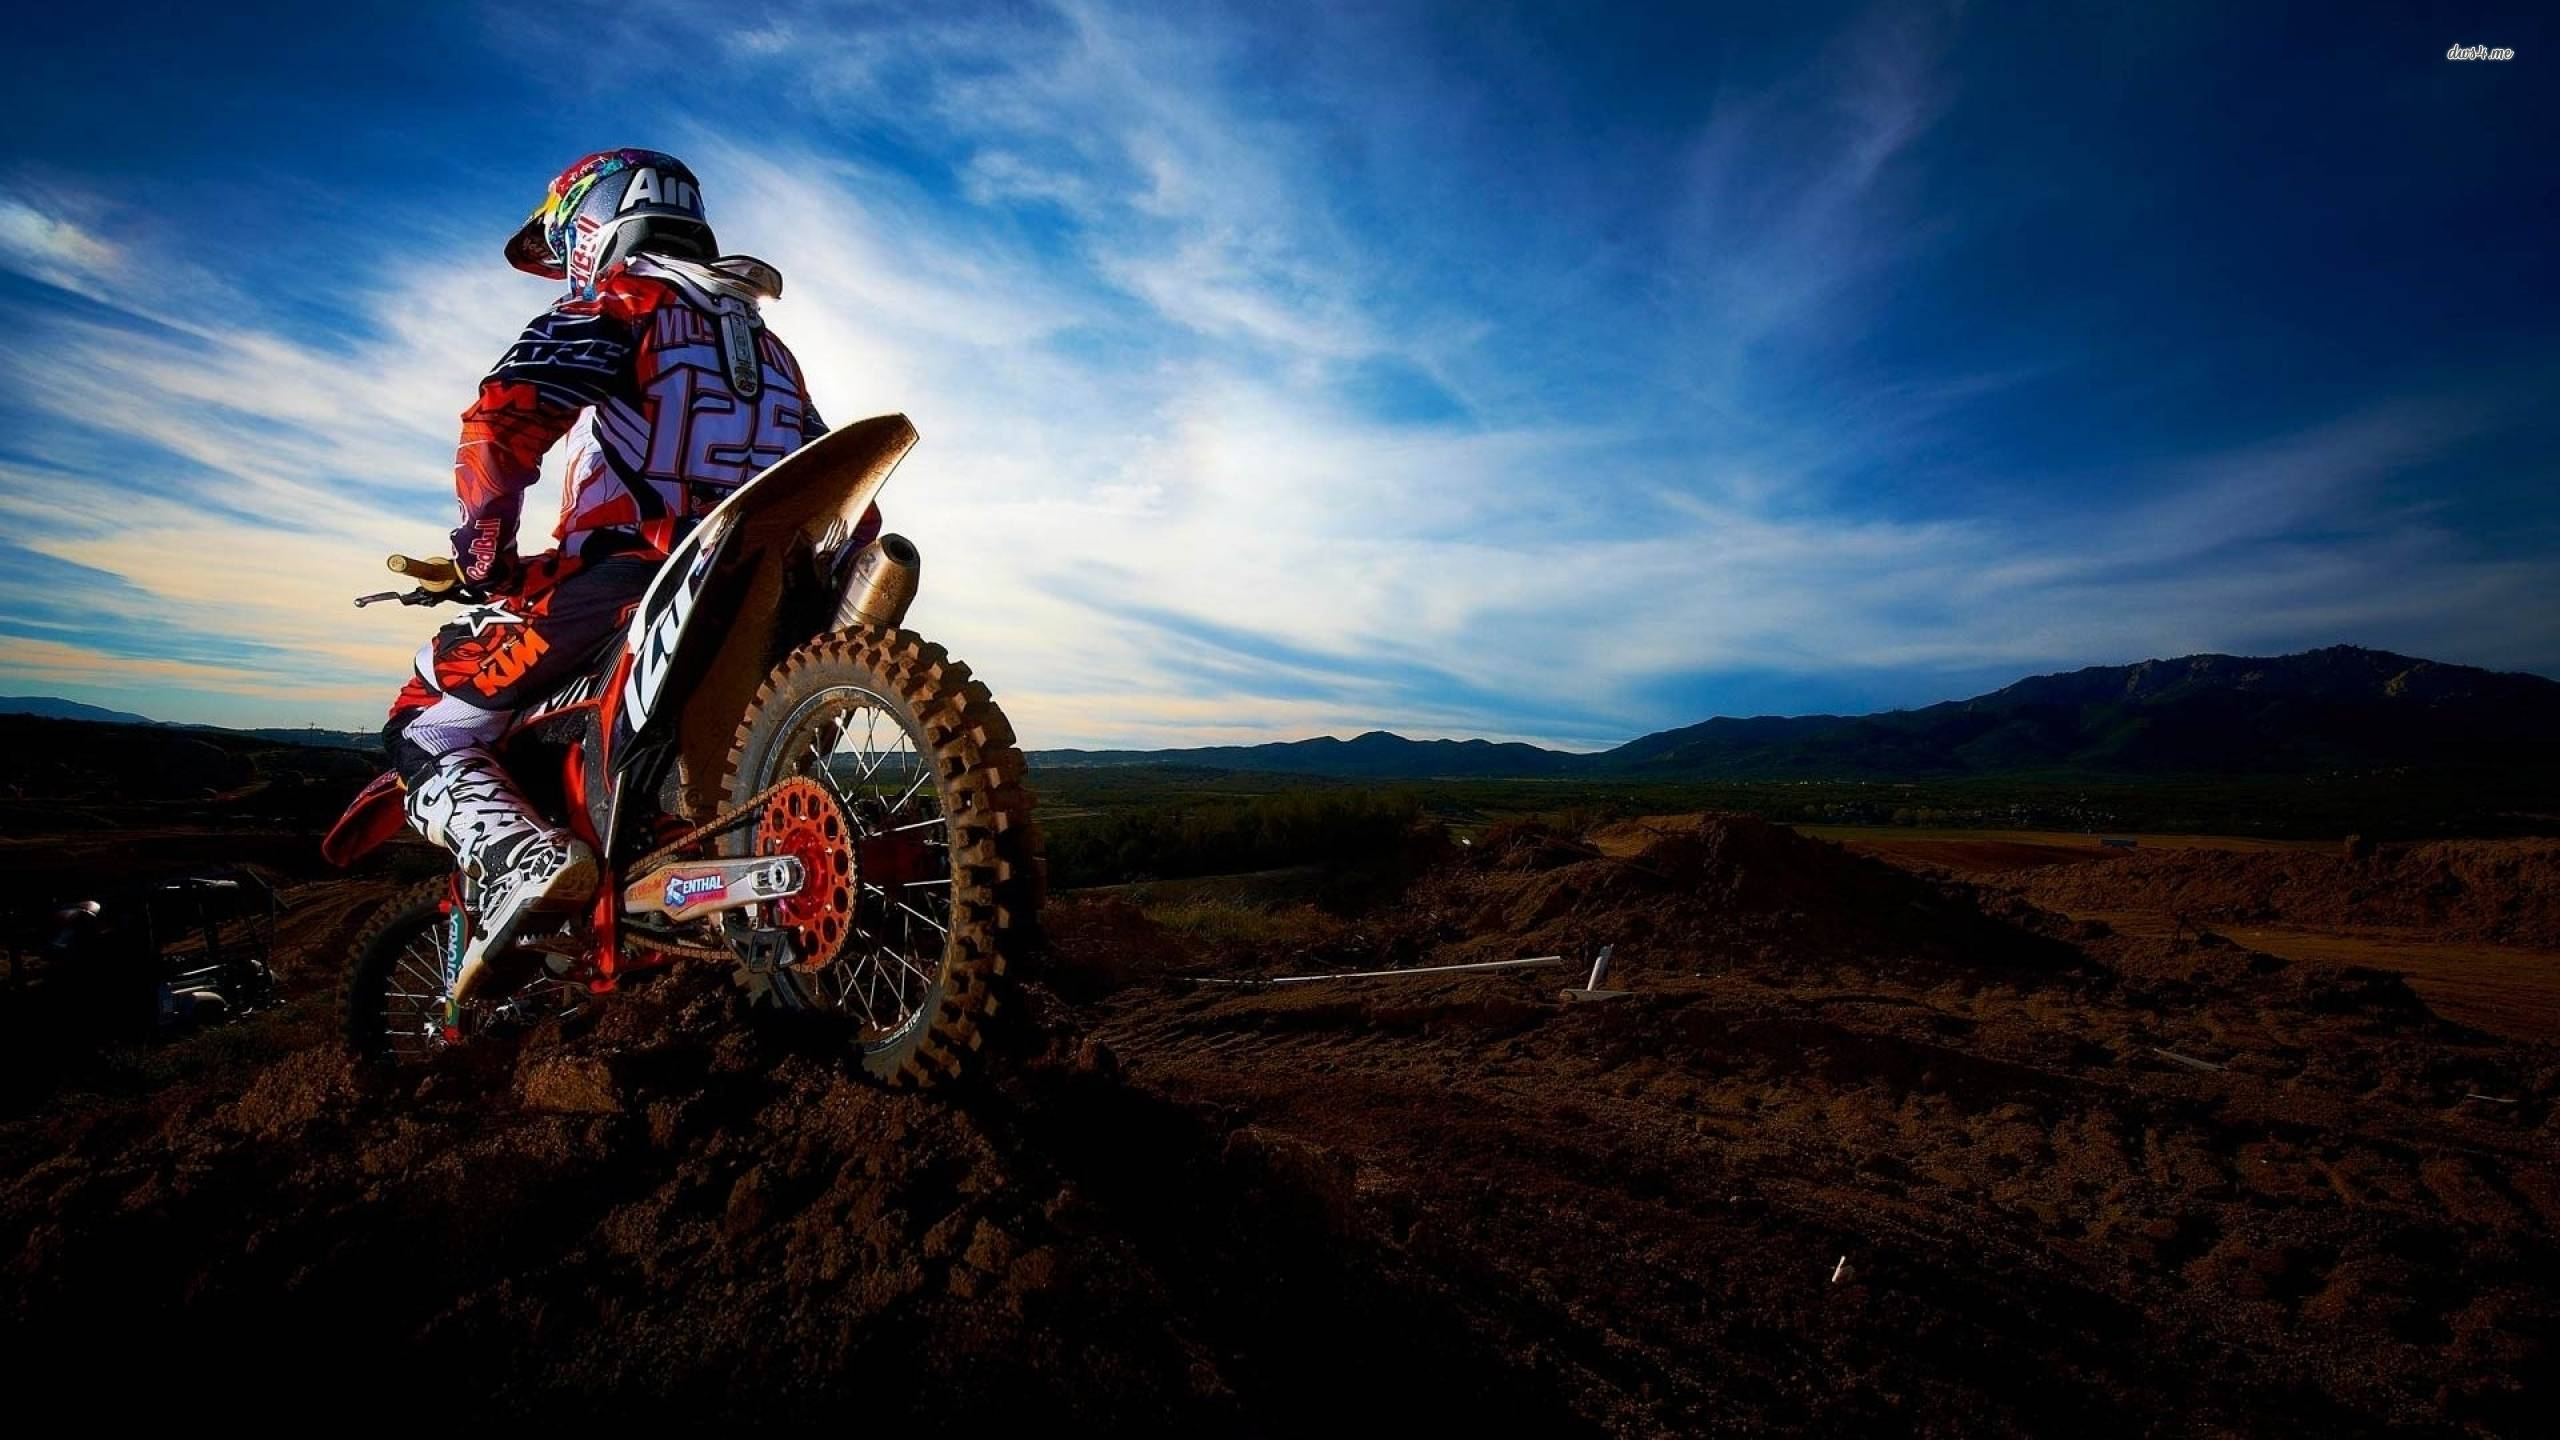 wallpapers hd motos - photo #33